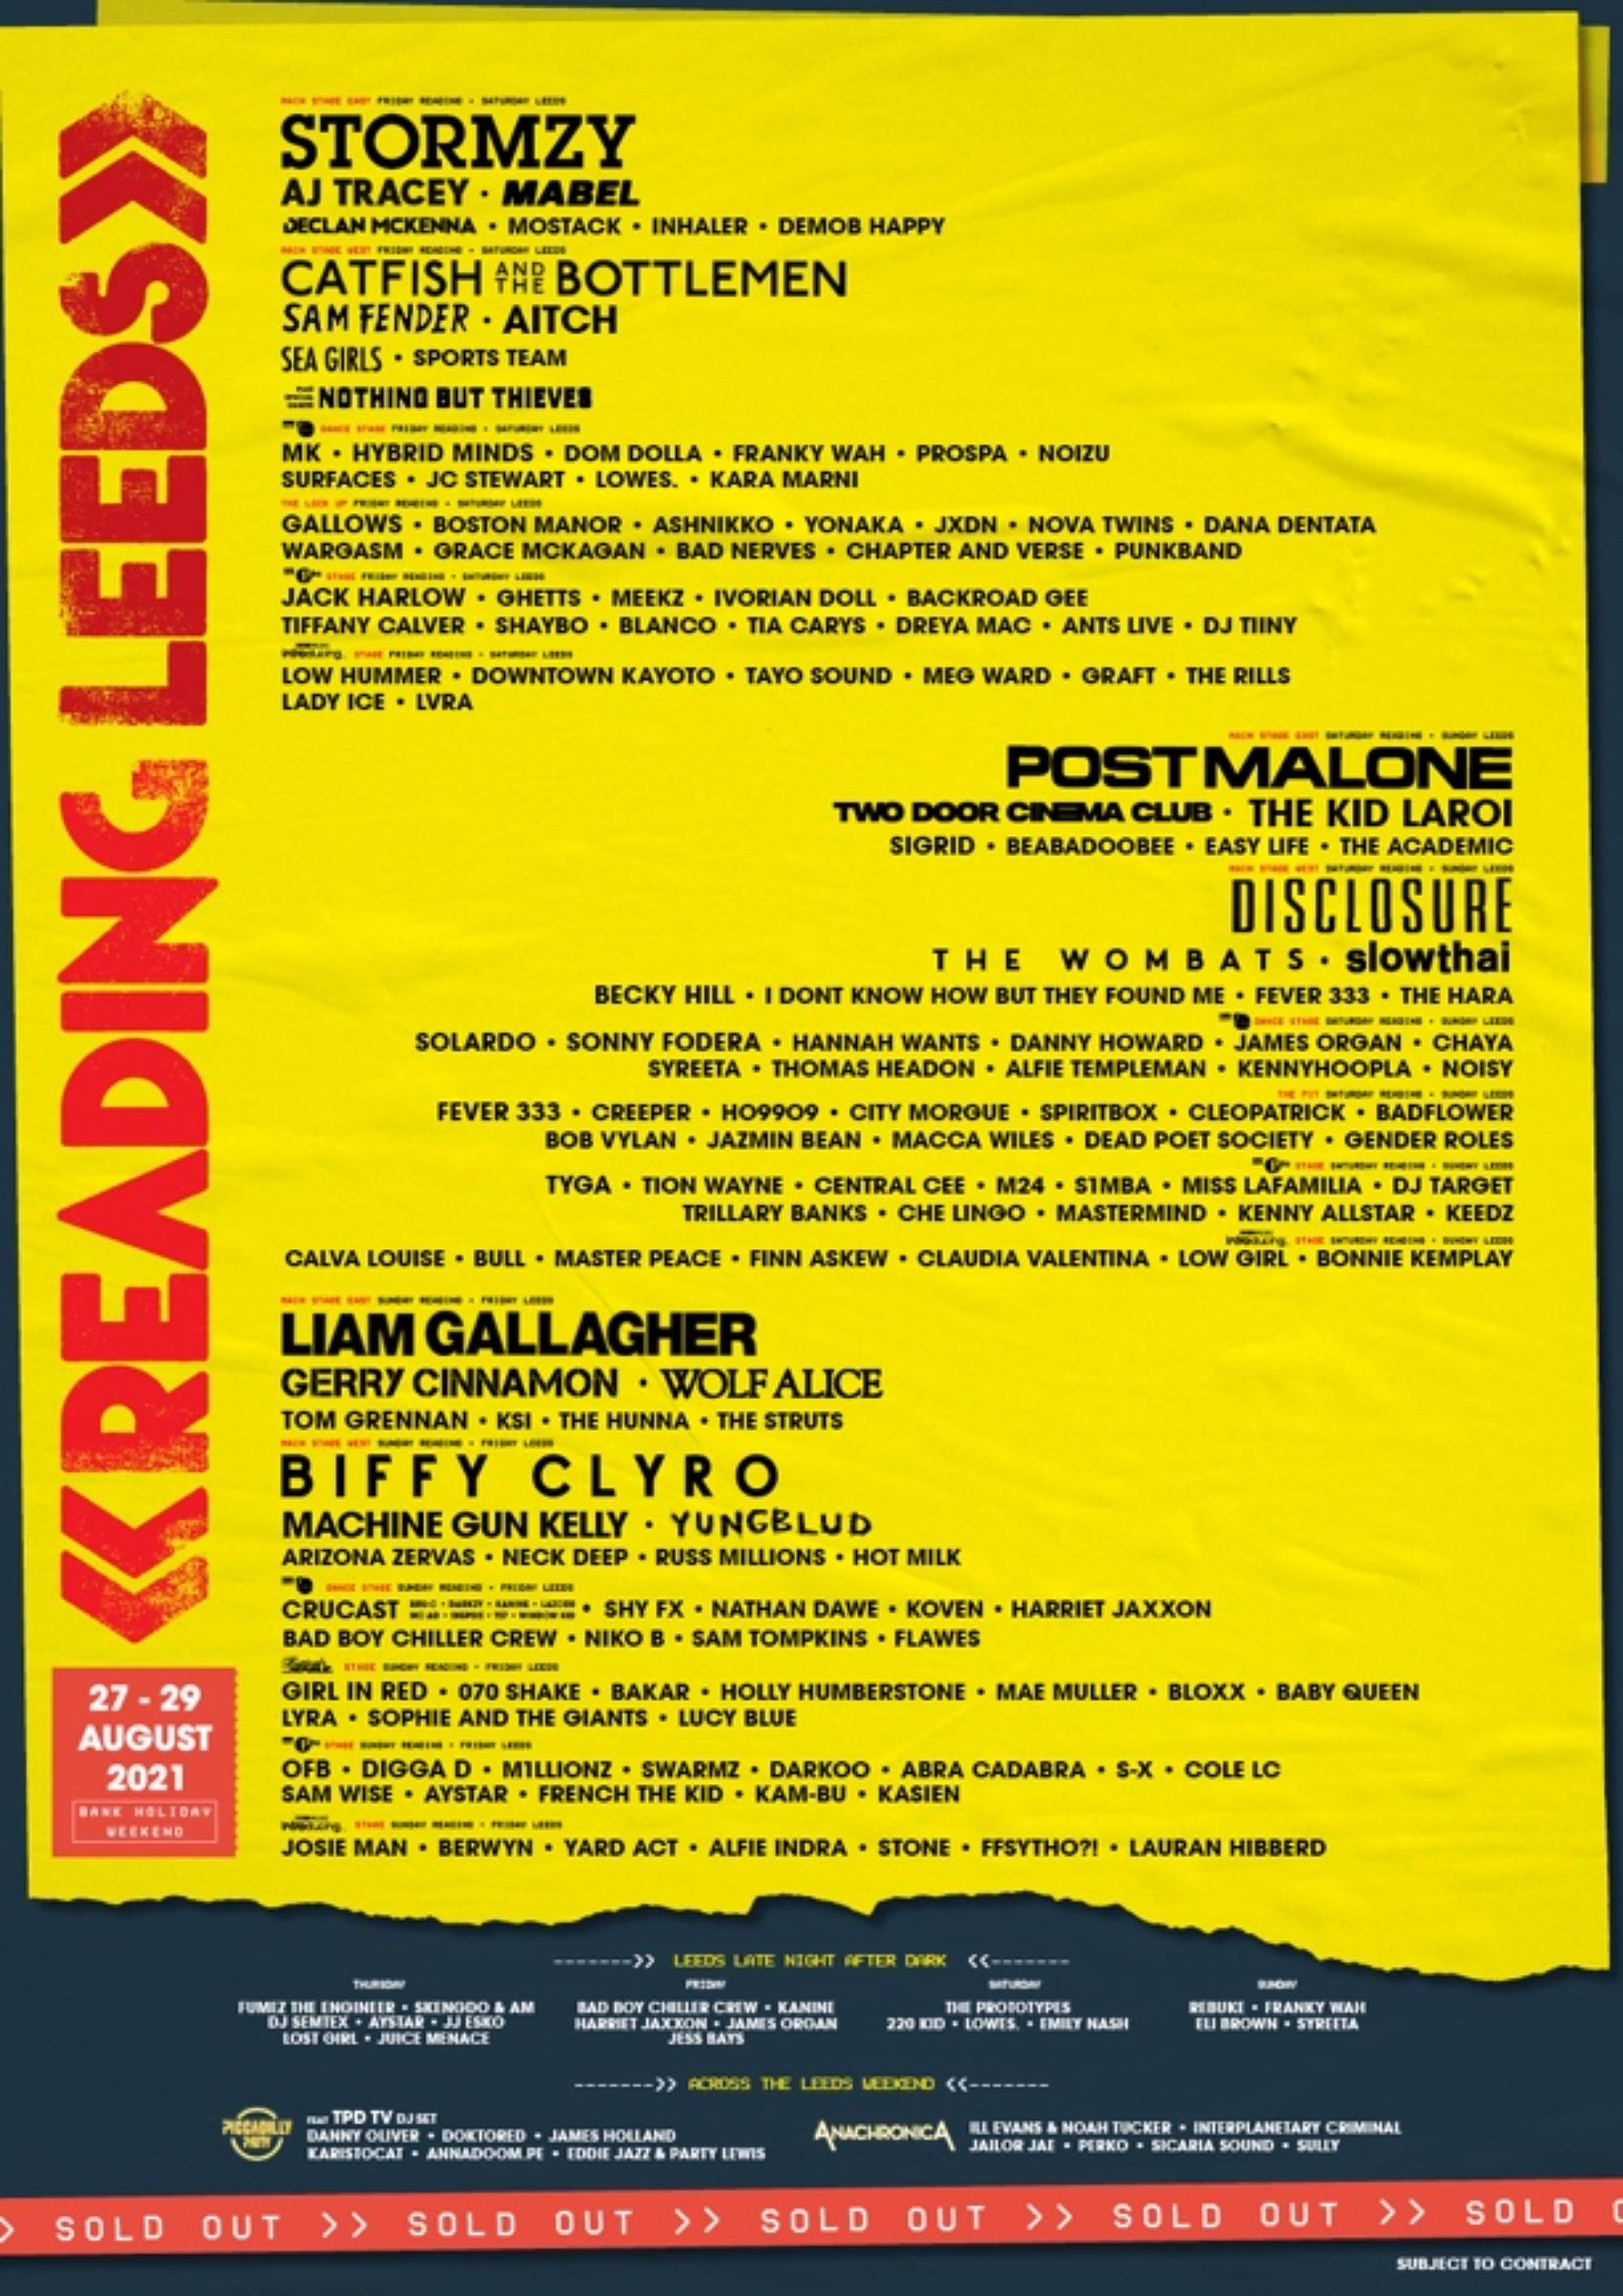 The updated line-up for Reading & Leeds 2021, featuring Biffy Clyro as new co-headliners